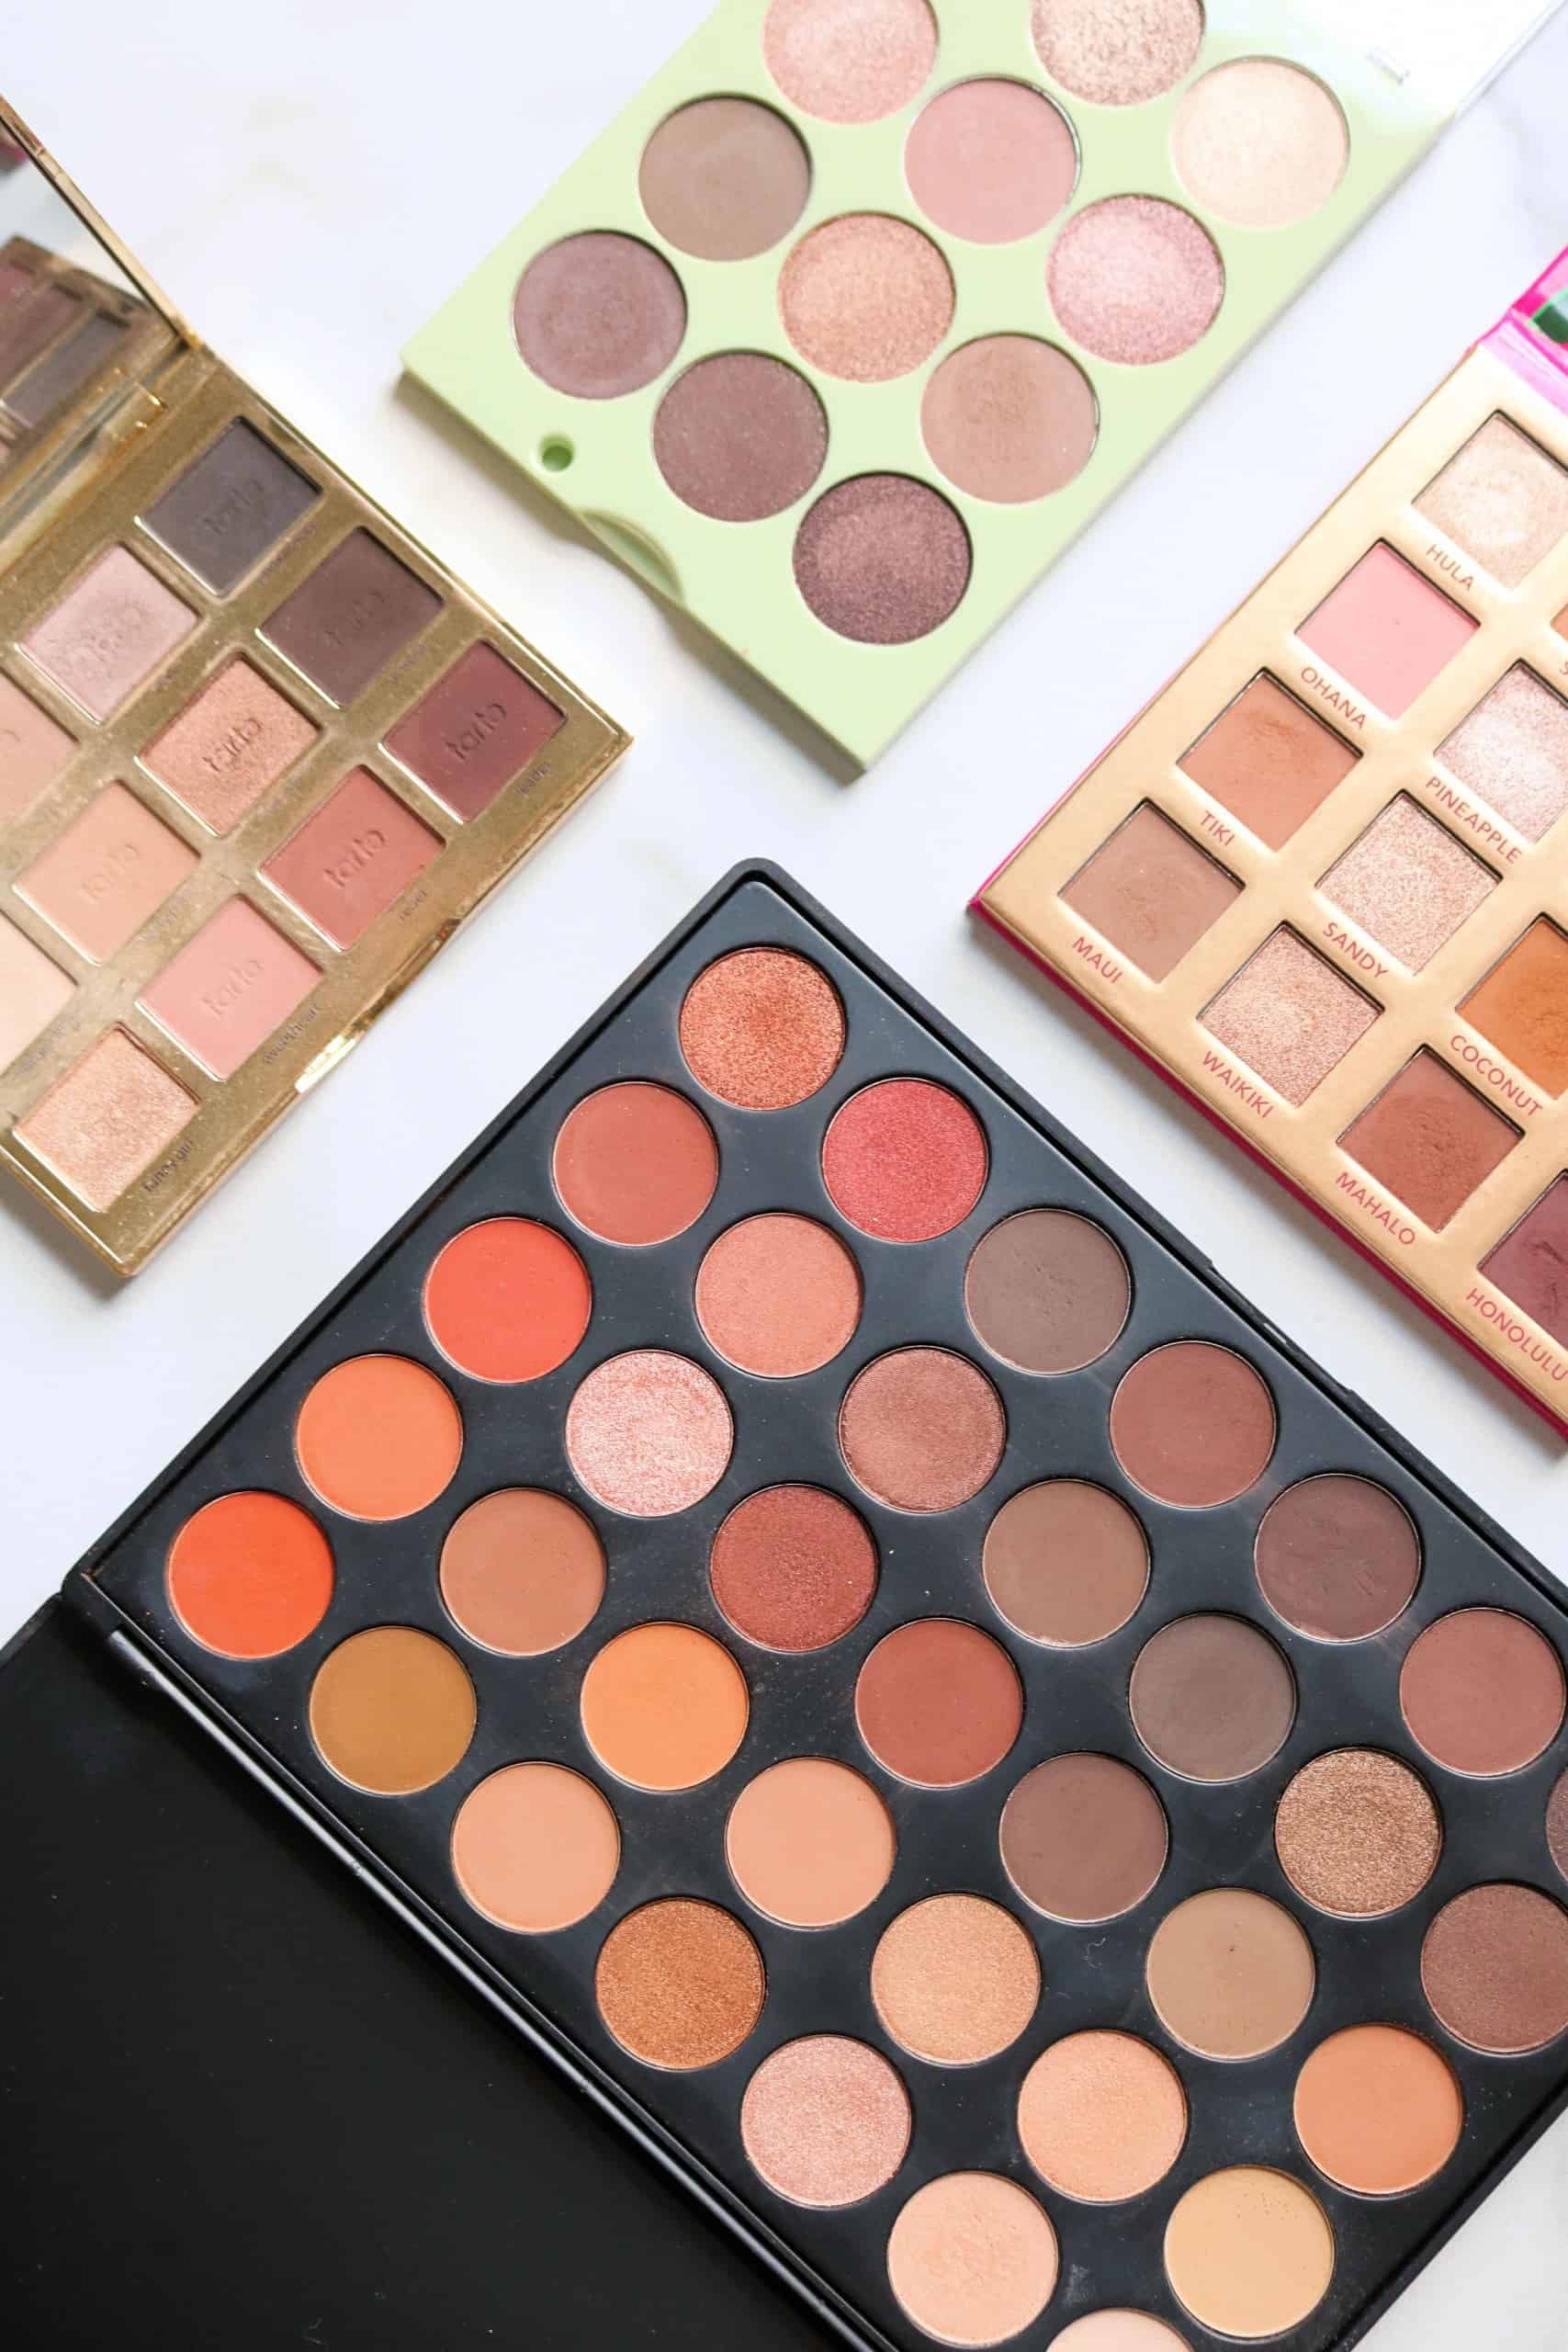 Check out the 8 Best Neutral Eyeshadow Palettes for everyday wear including both high end and quality drugstore eyeshadow palettes! These affordable neutral eyeshadow palettes have both cool and warm matte eyeshadows perfect for creating both natural eye makeup looks and romantic, smokey eye makeup looks. #eyeshadow #drugstoremakeup #highendmakeup #bestmakeup